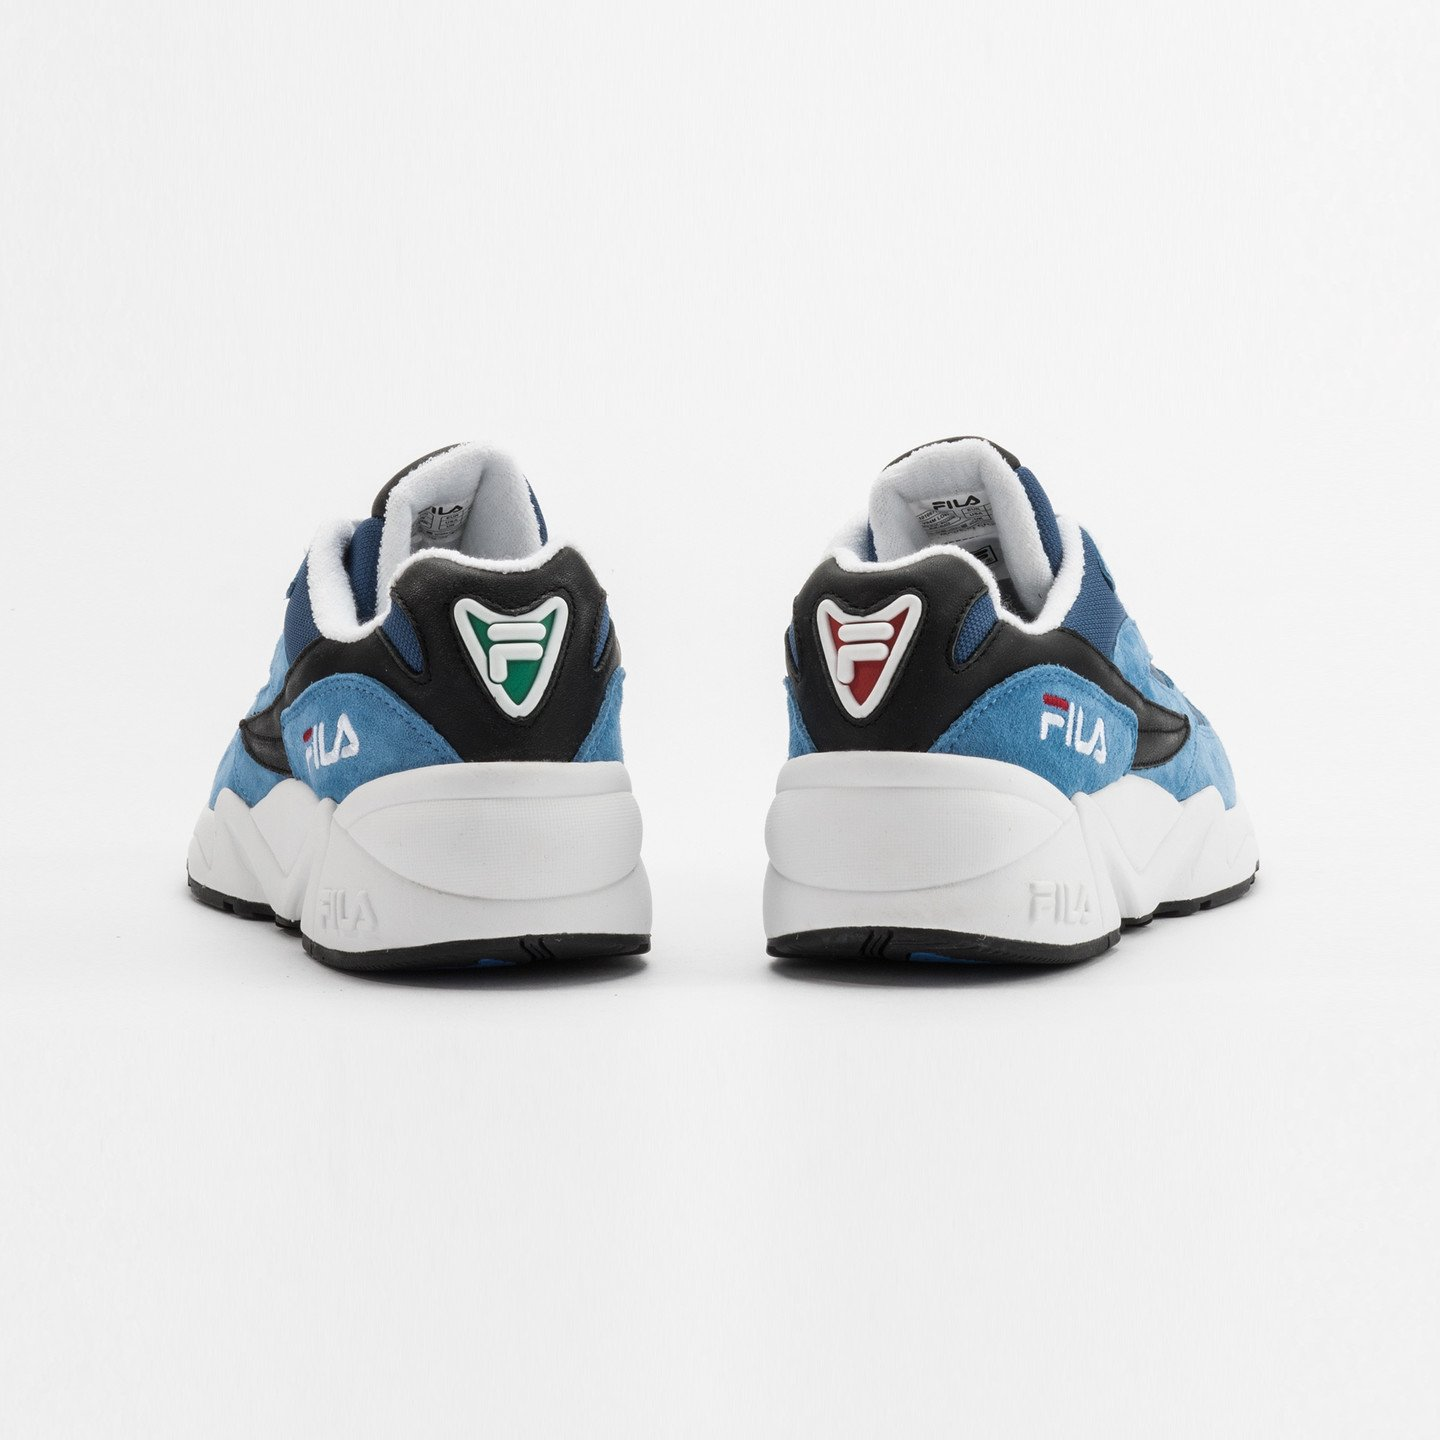 Fila V94M Runner Blue / Navy / White 1010671-21H